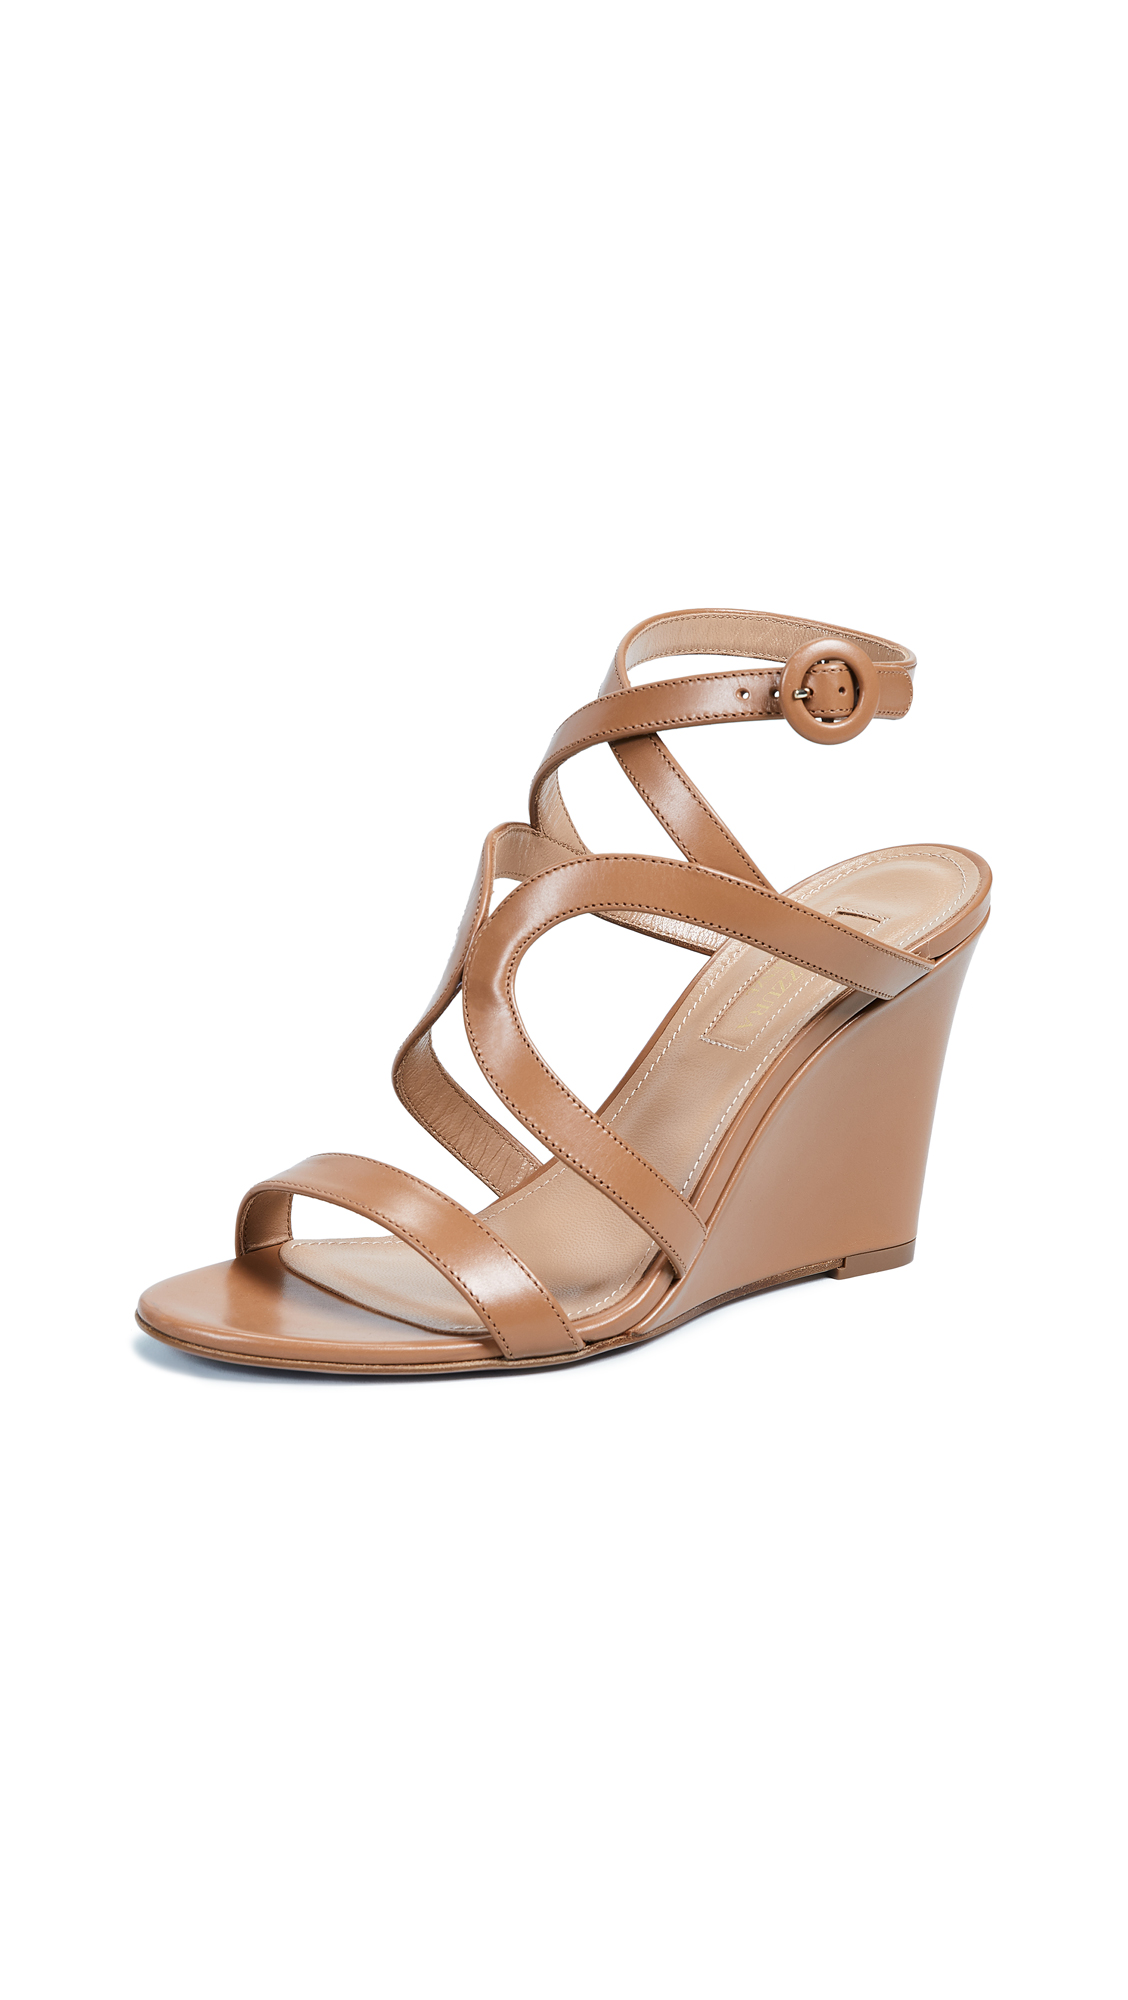 Aquazzura Morena 85mm Wedge - Whiskey